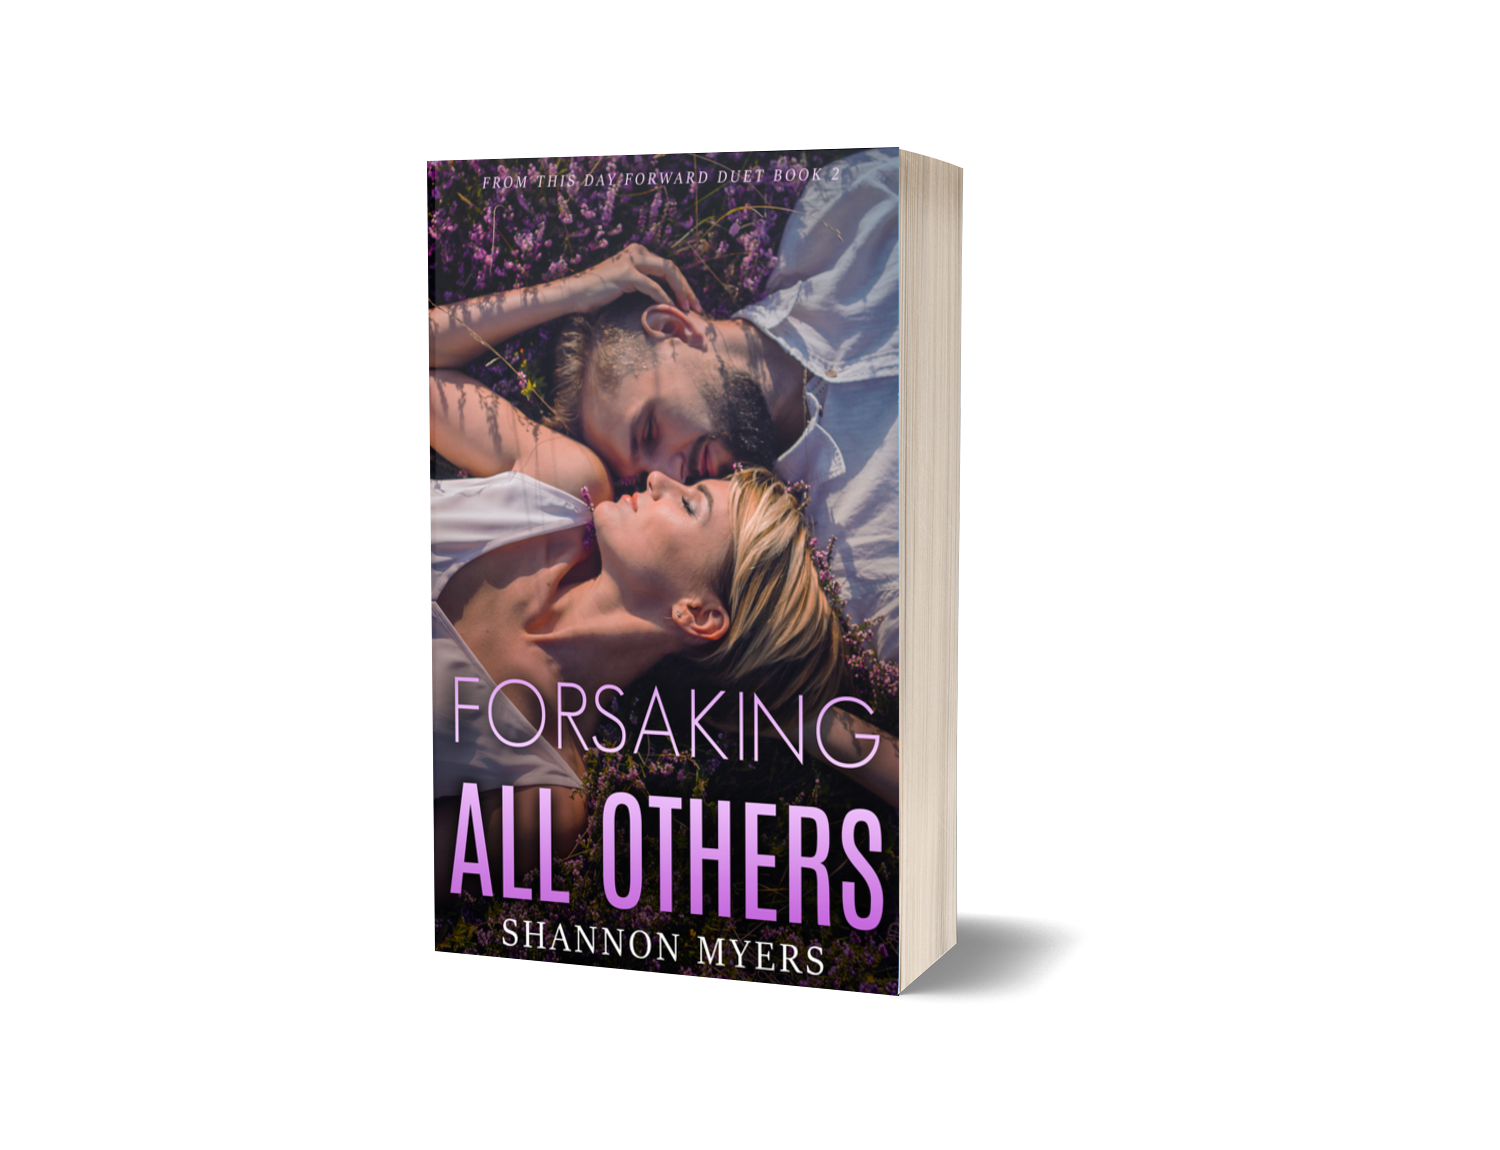 Forsaking All Others (FTDF Duet Book 2)